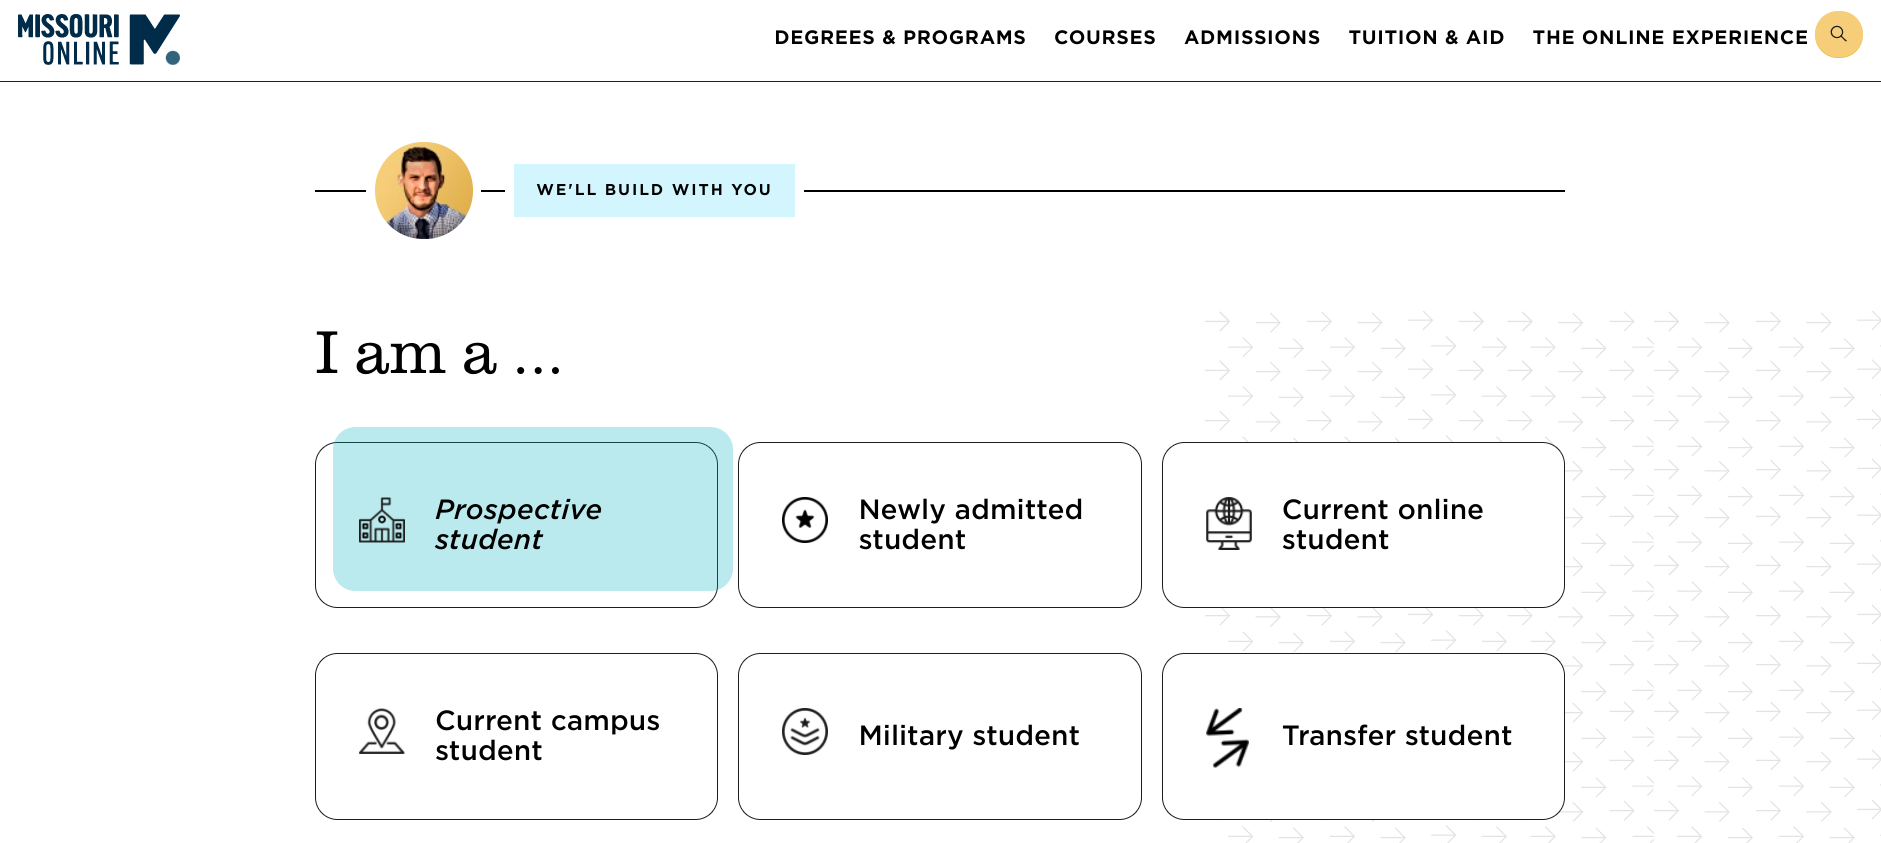 A screenshot of the Missouri Online portal showing access options for student groups